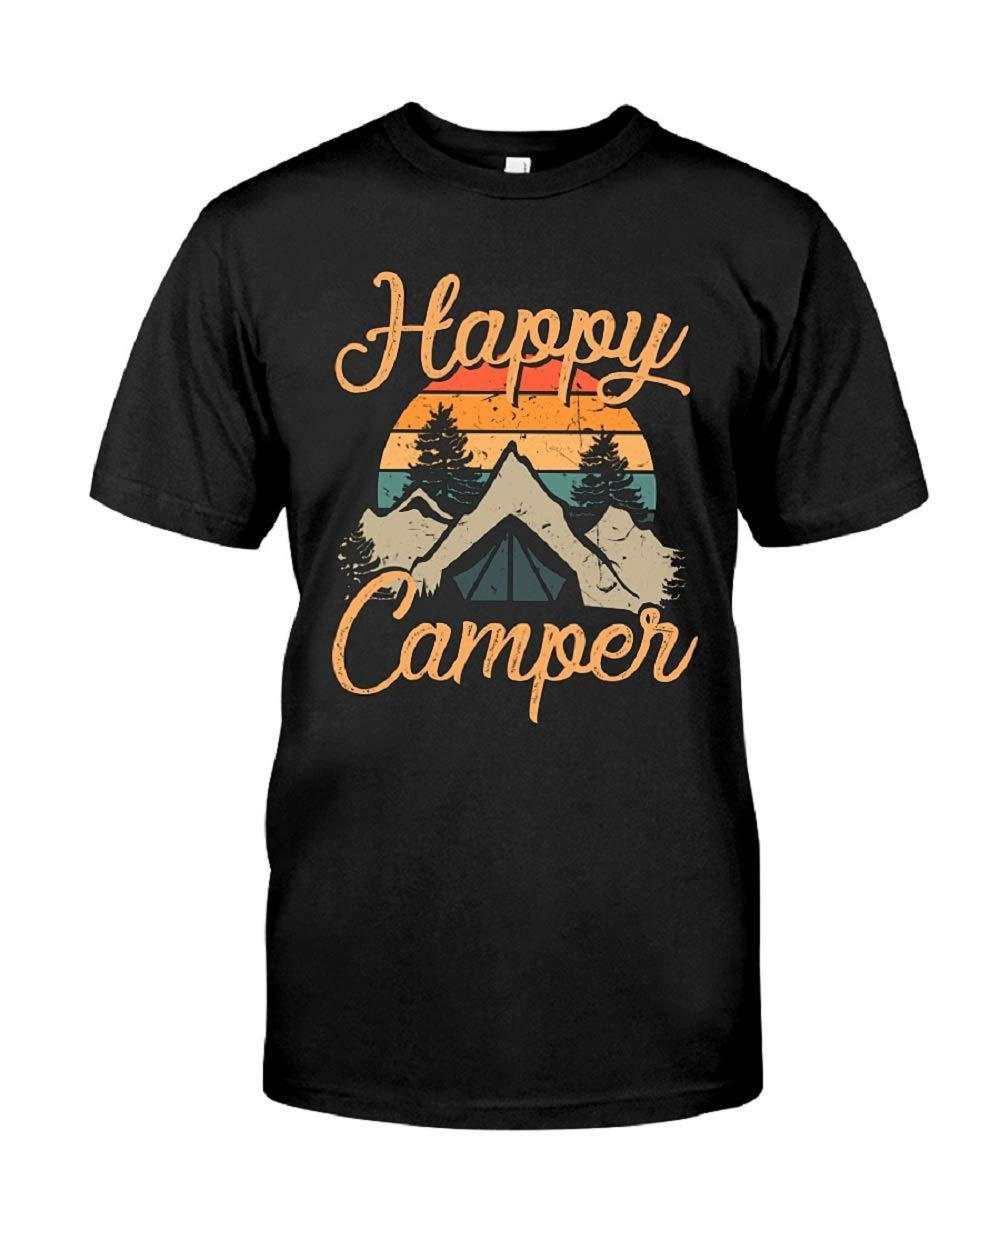 Happy Camper T Shirt For Funny Letter Print Short Sleeve Tees Tops Beeshirt